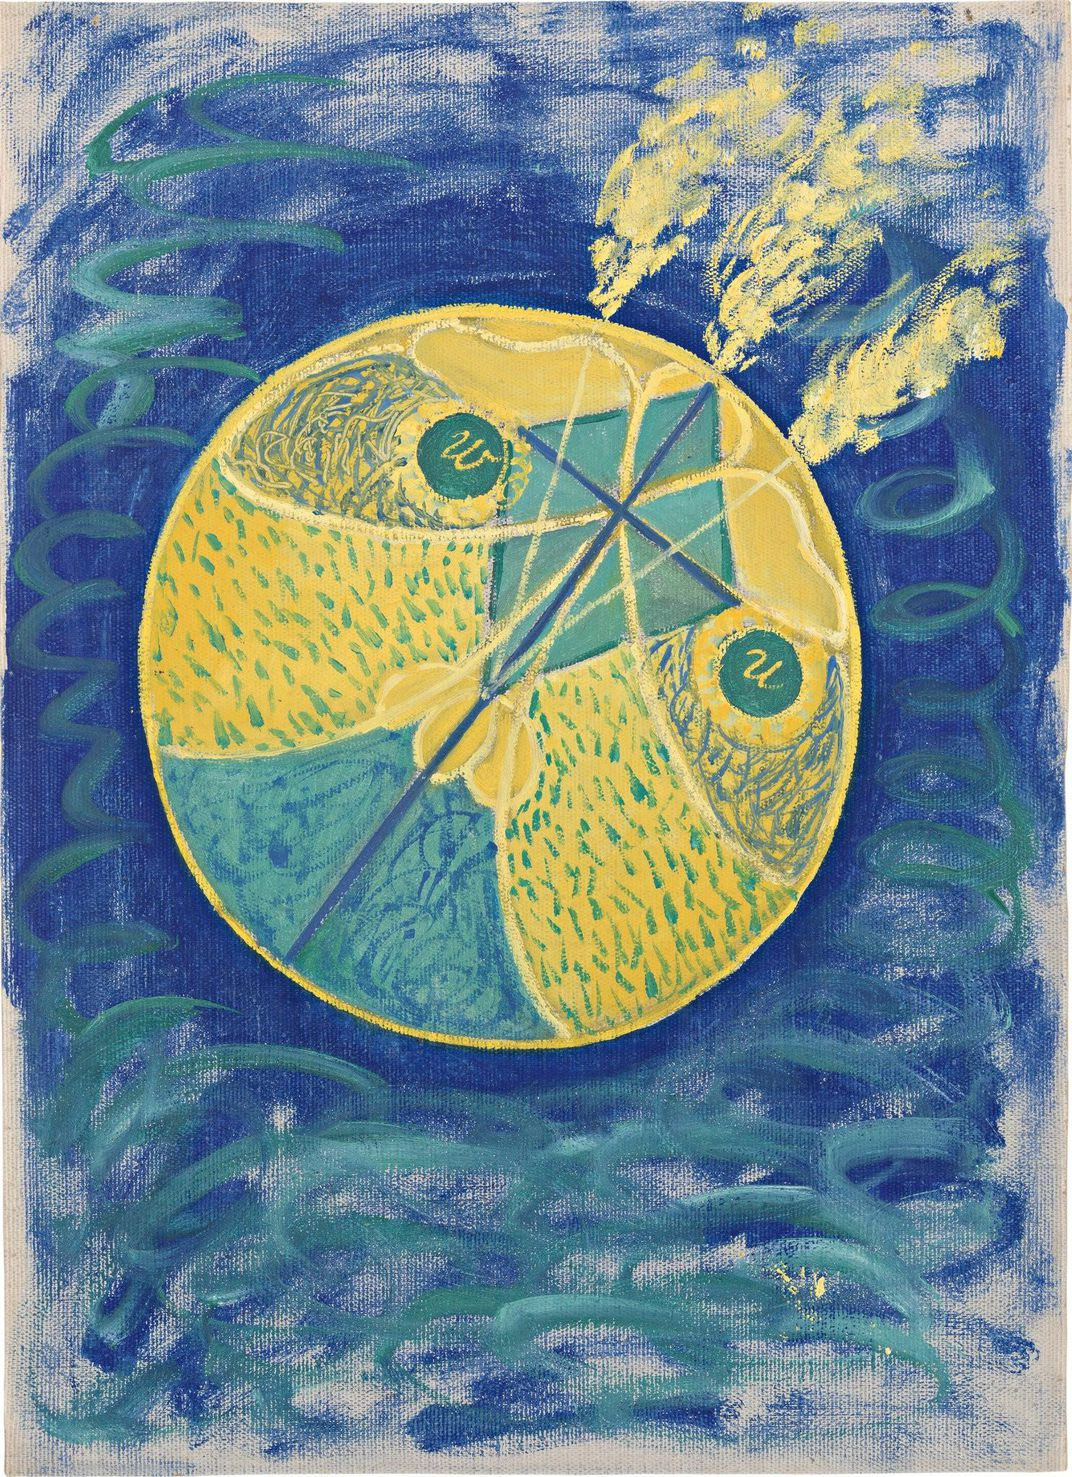 From Obscurity, Hilma af Klint Is Finally Being Recognized